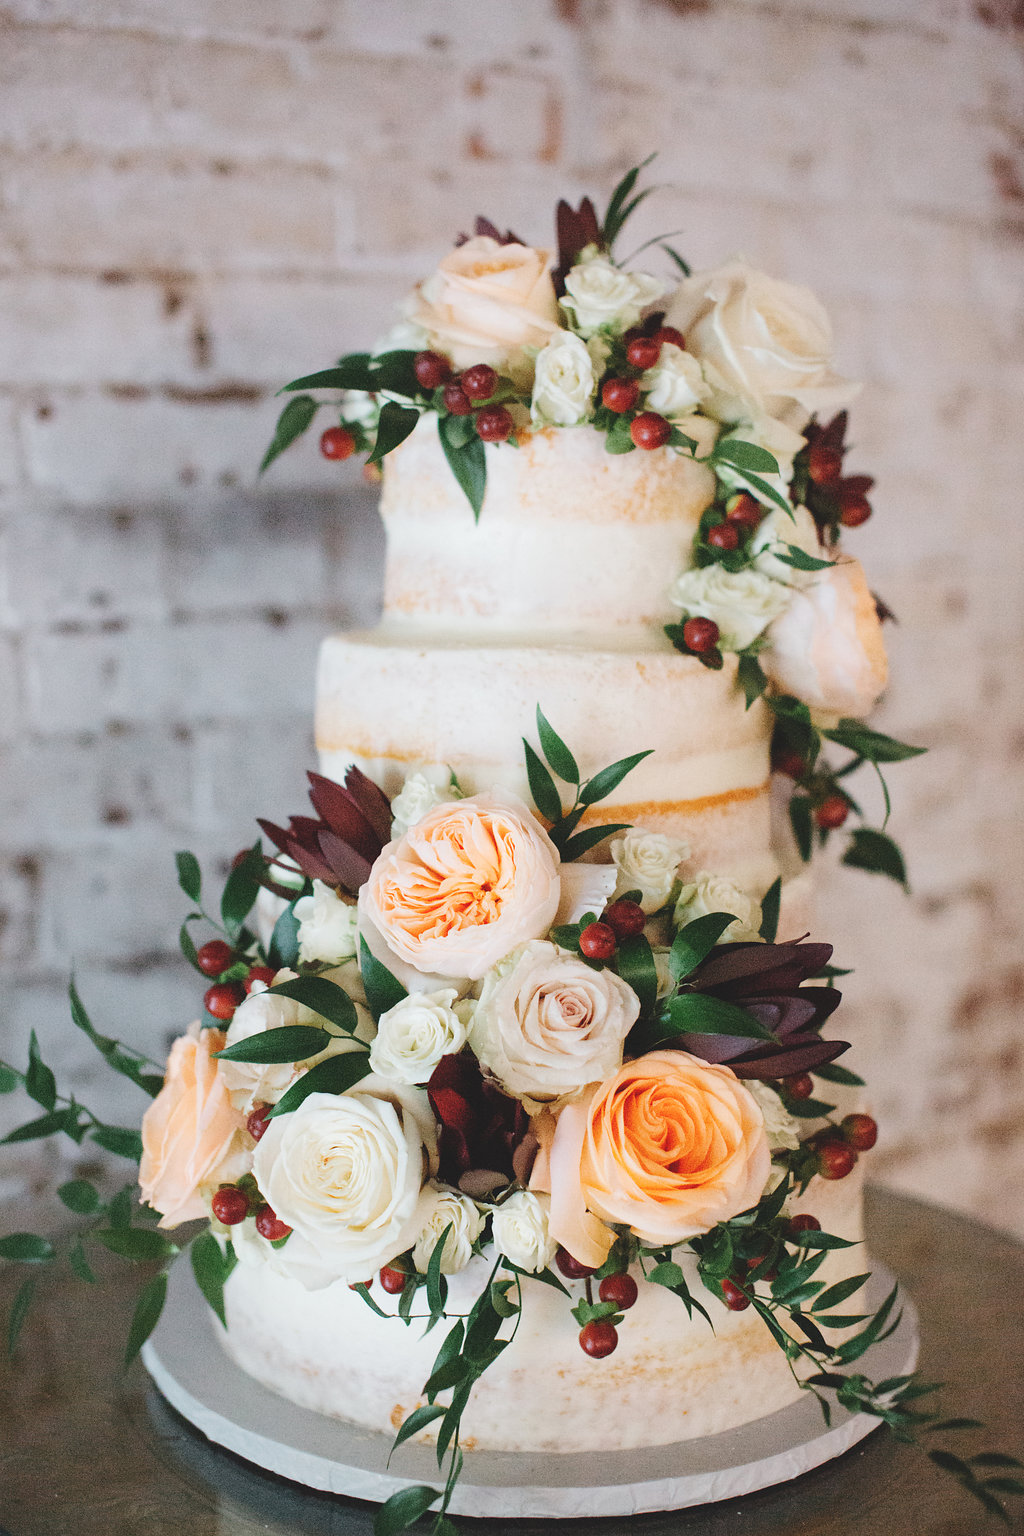 Scraped Cake with Floral Bunches.JPG